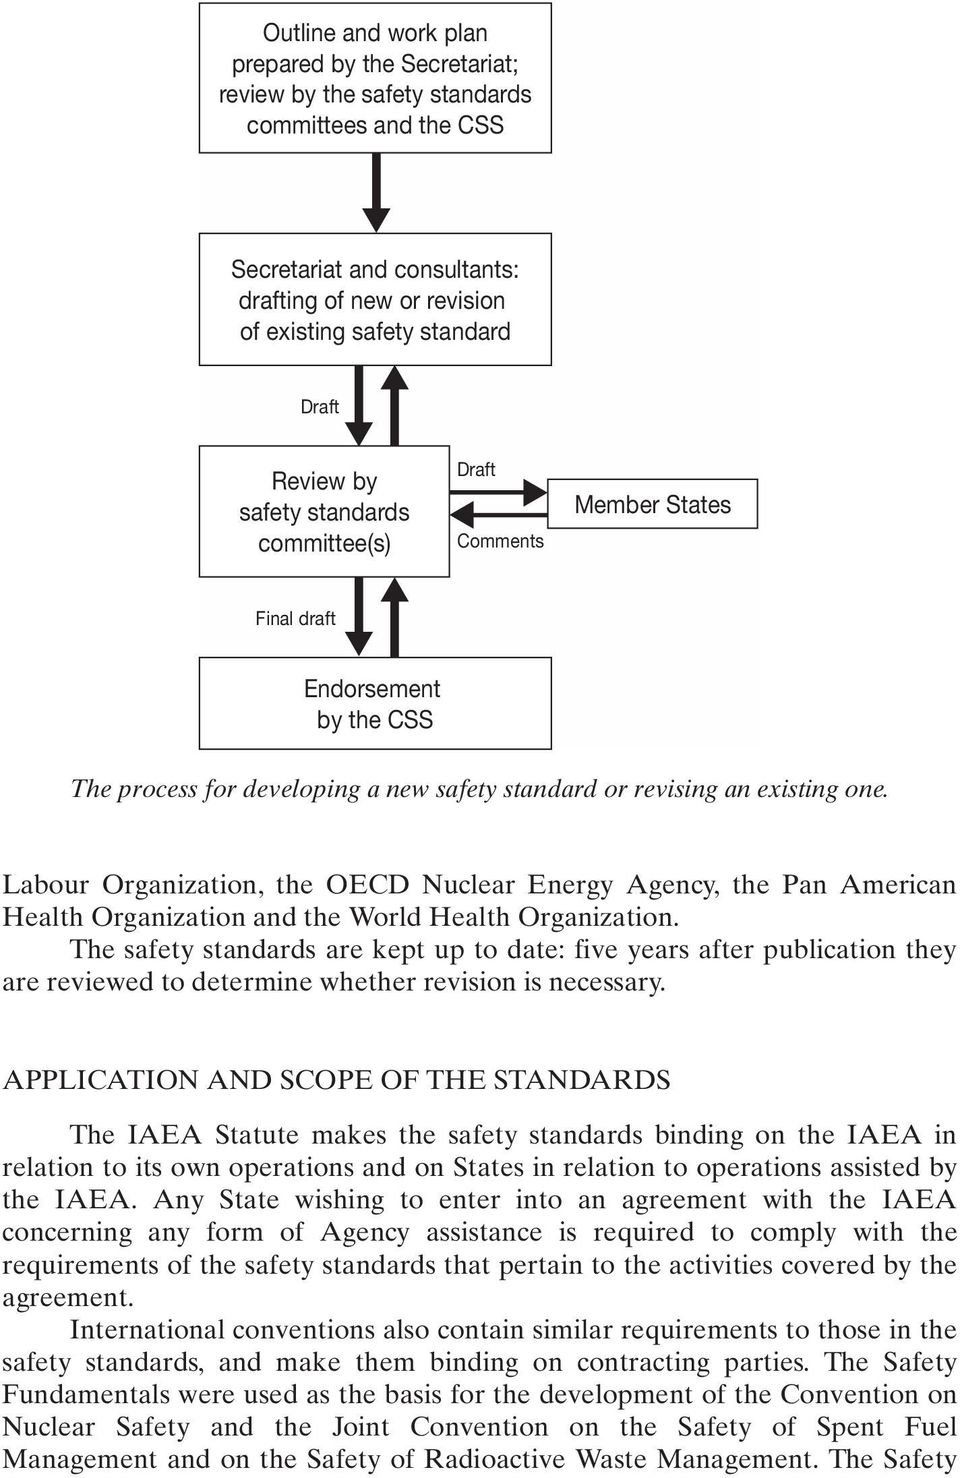 Labour Organization, the OECD Nuclear Energy Agency, the Pan American Health Organization and the World Health Organization.